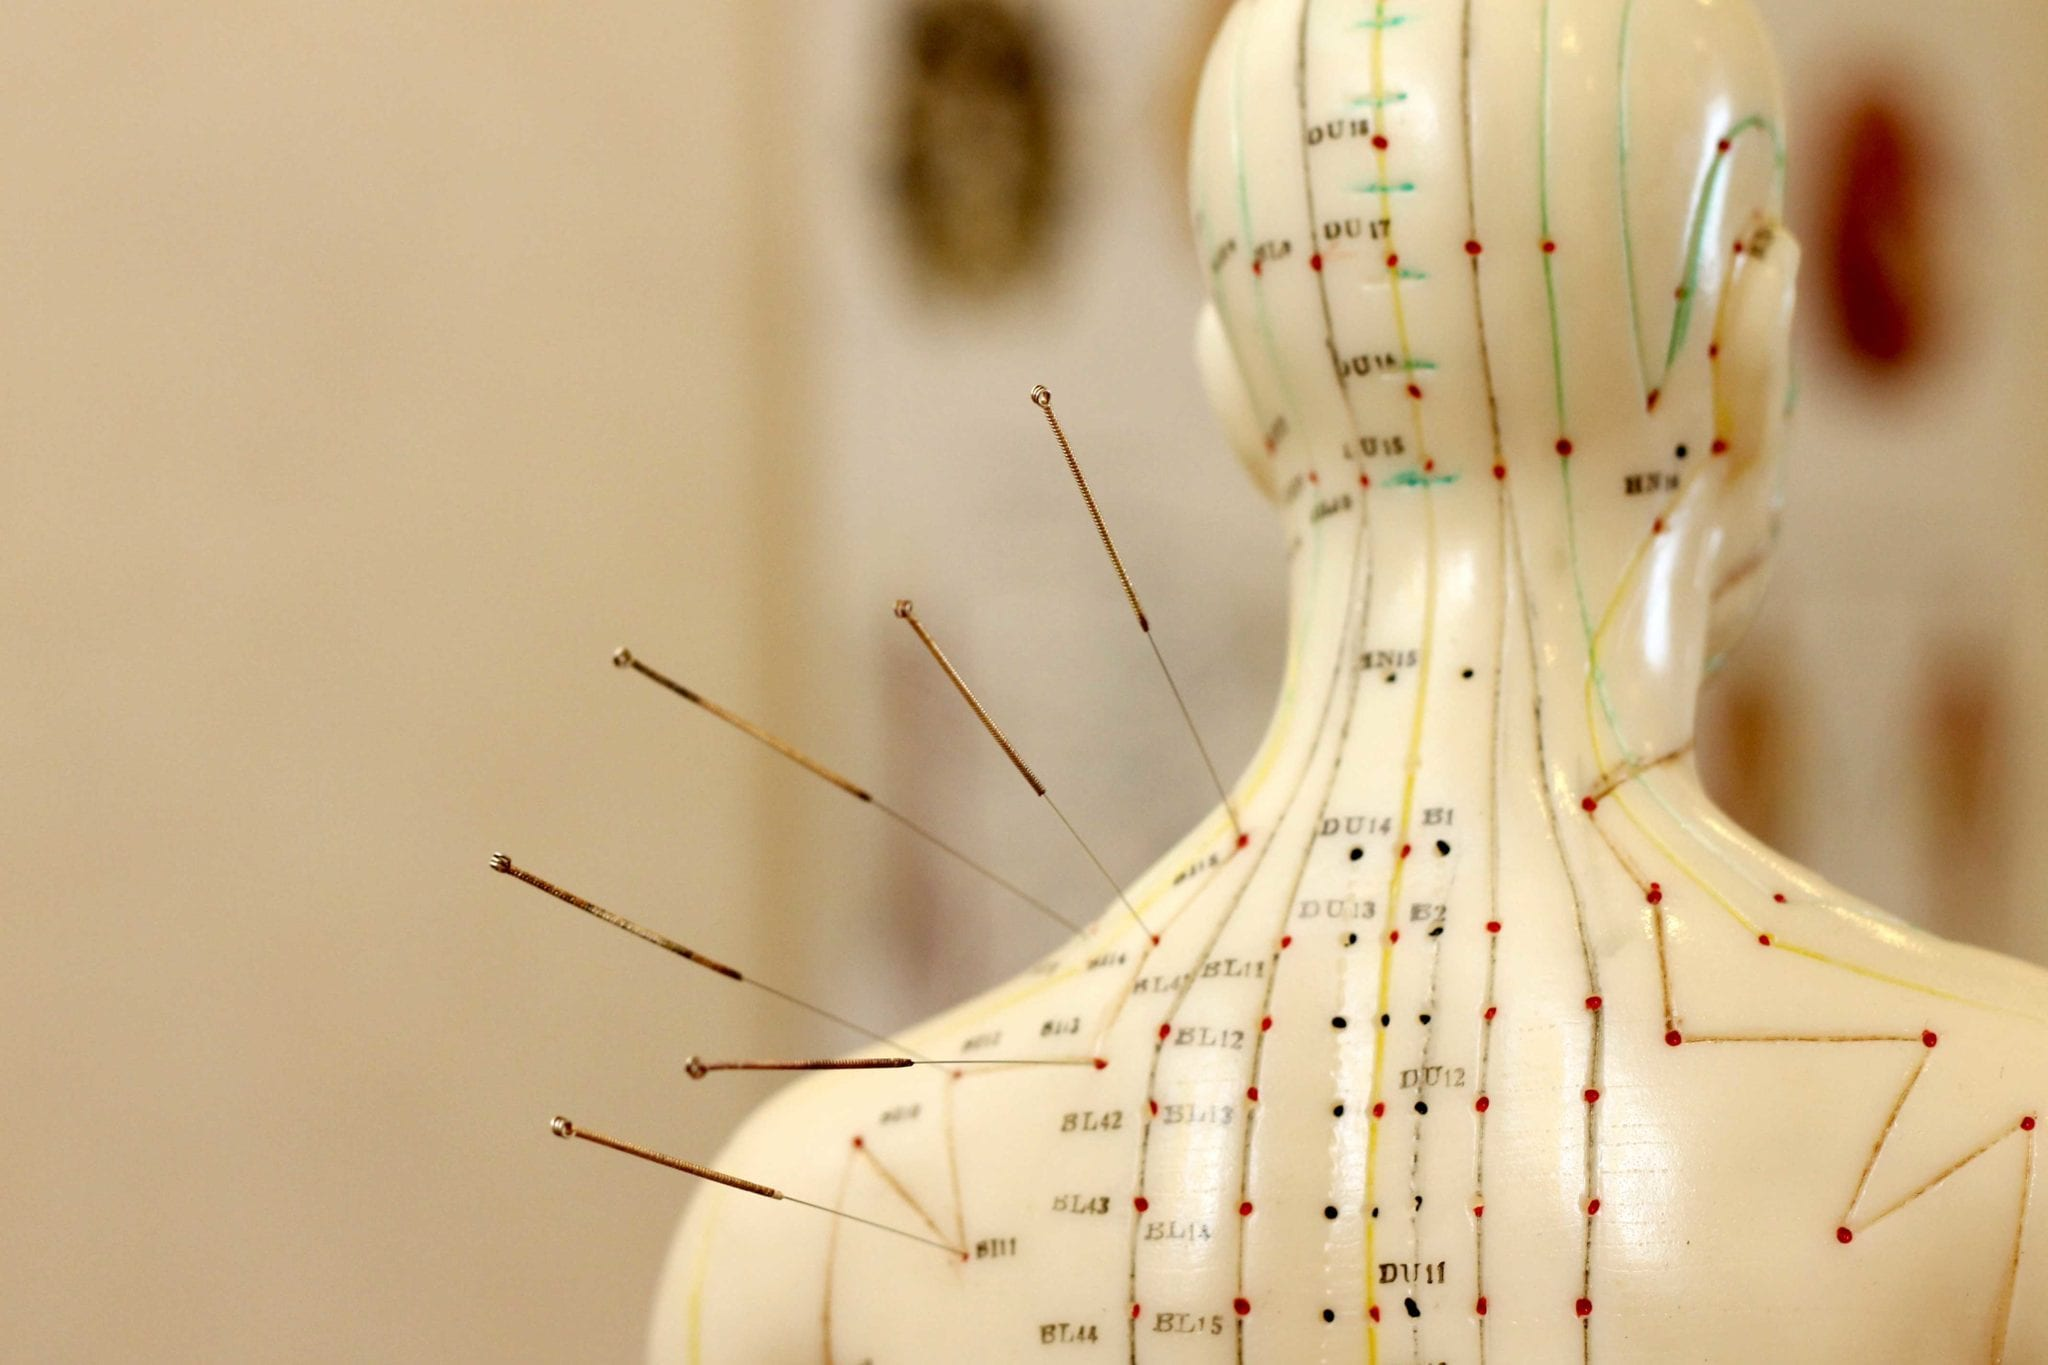 acupuncture points charts and